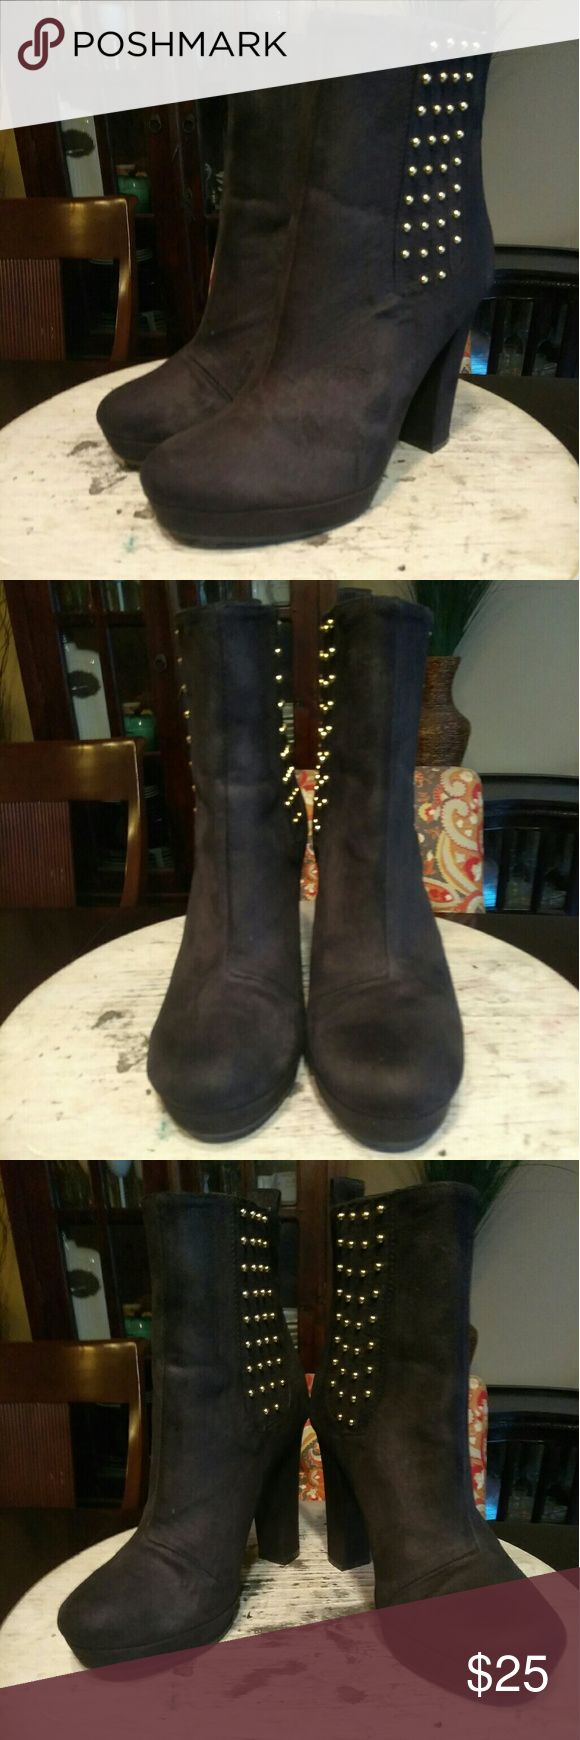 3⃣🛍👠DAY SALE!!! H&M-Black/Gold Boot These boots are made for WALKING!!! Black man-made upper, gold embellished sides, round-toe, 4in heel & 3/4in platform. Cute, comfortable and in good condition!!! Let's make some offers Ladies 😉 H&M Shoes Ankle Boots & Booties